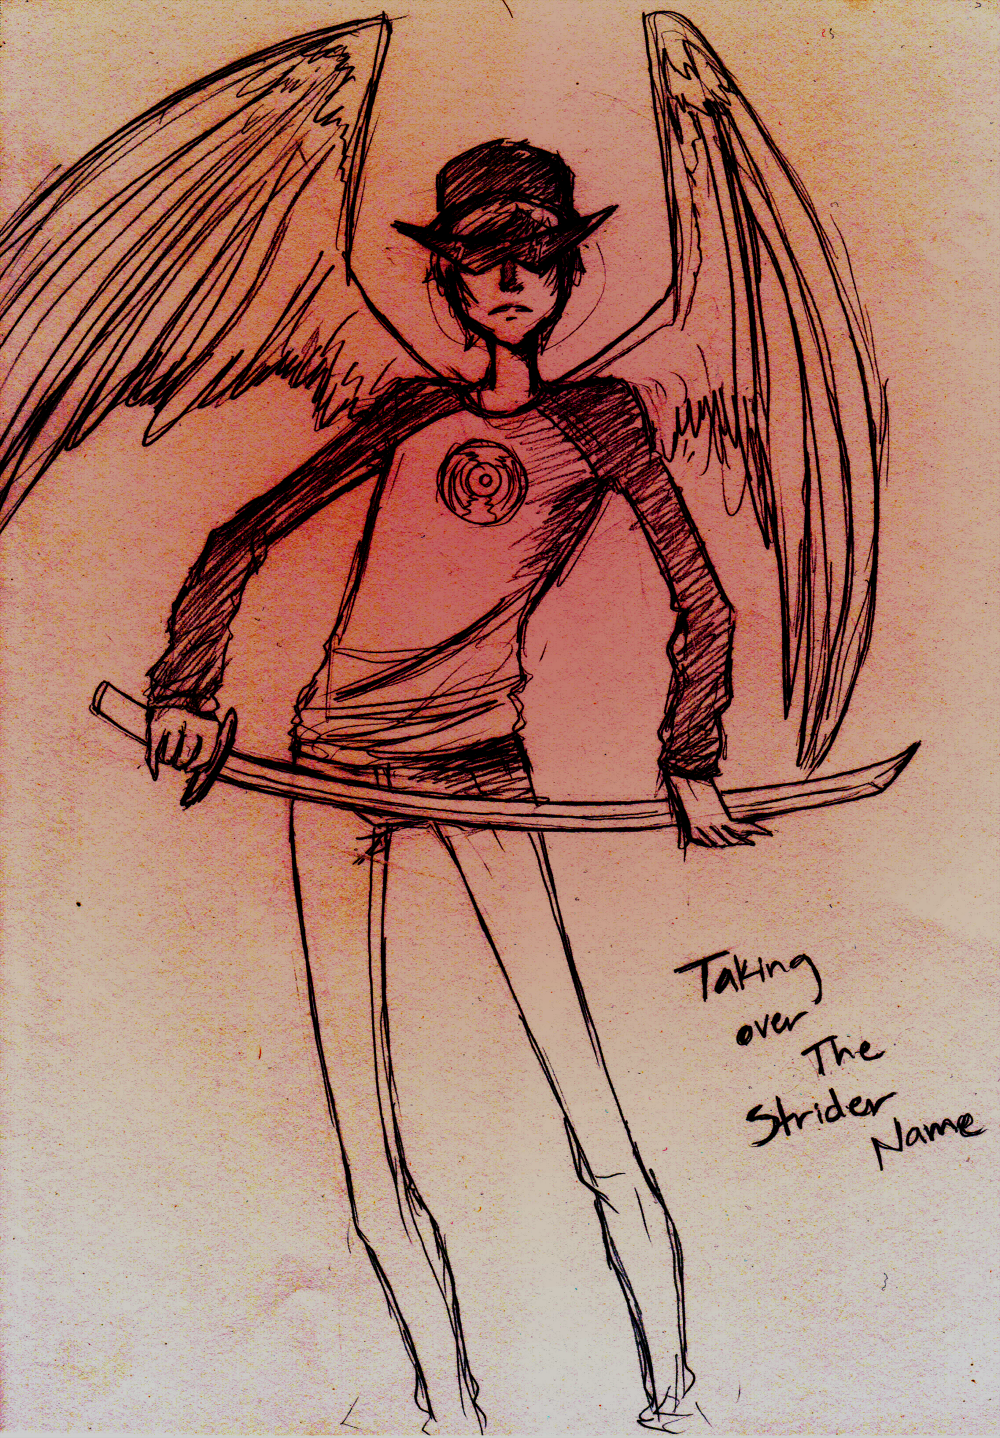 Homestuck: Dave taking over